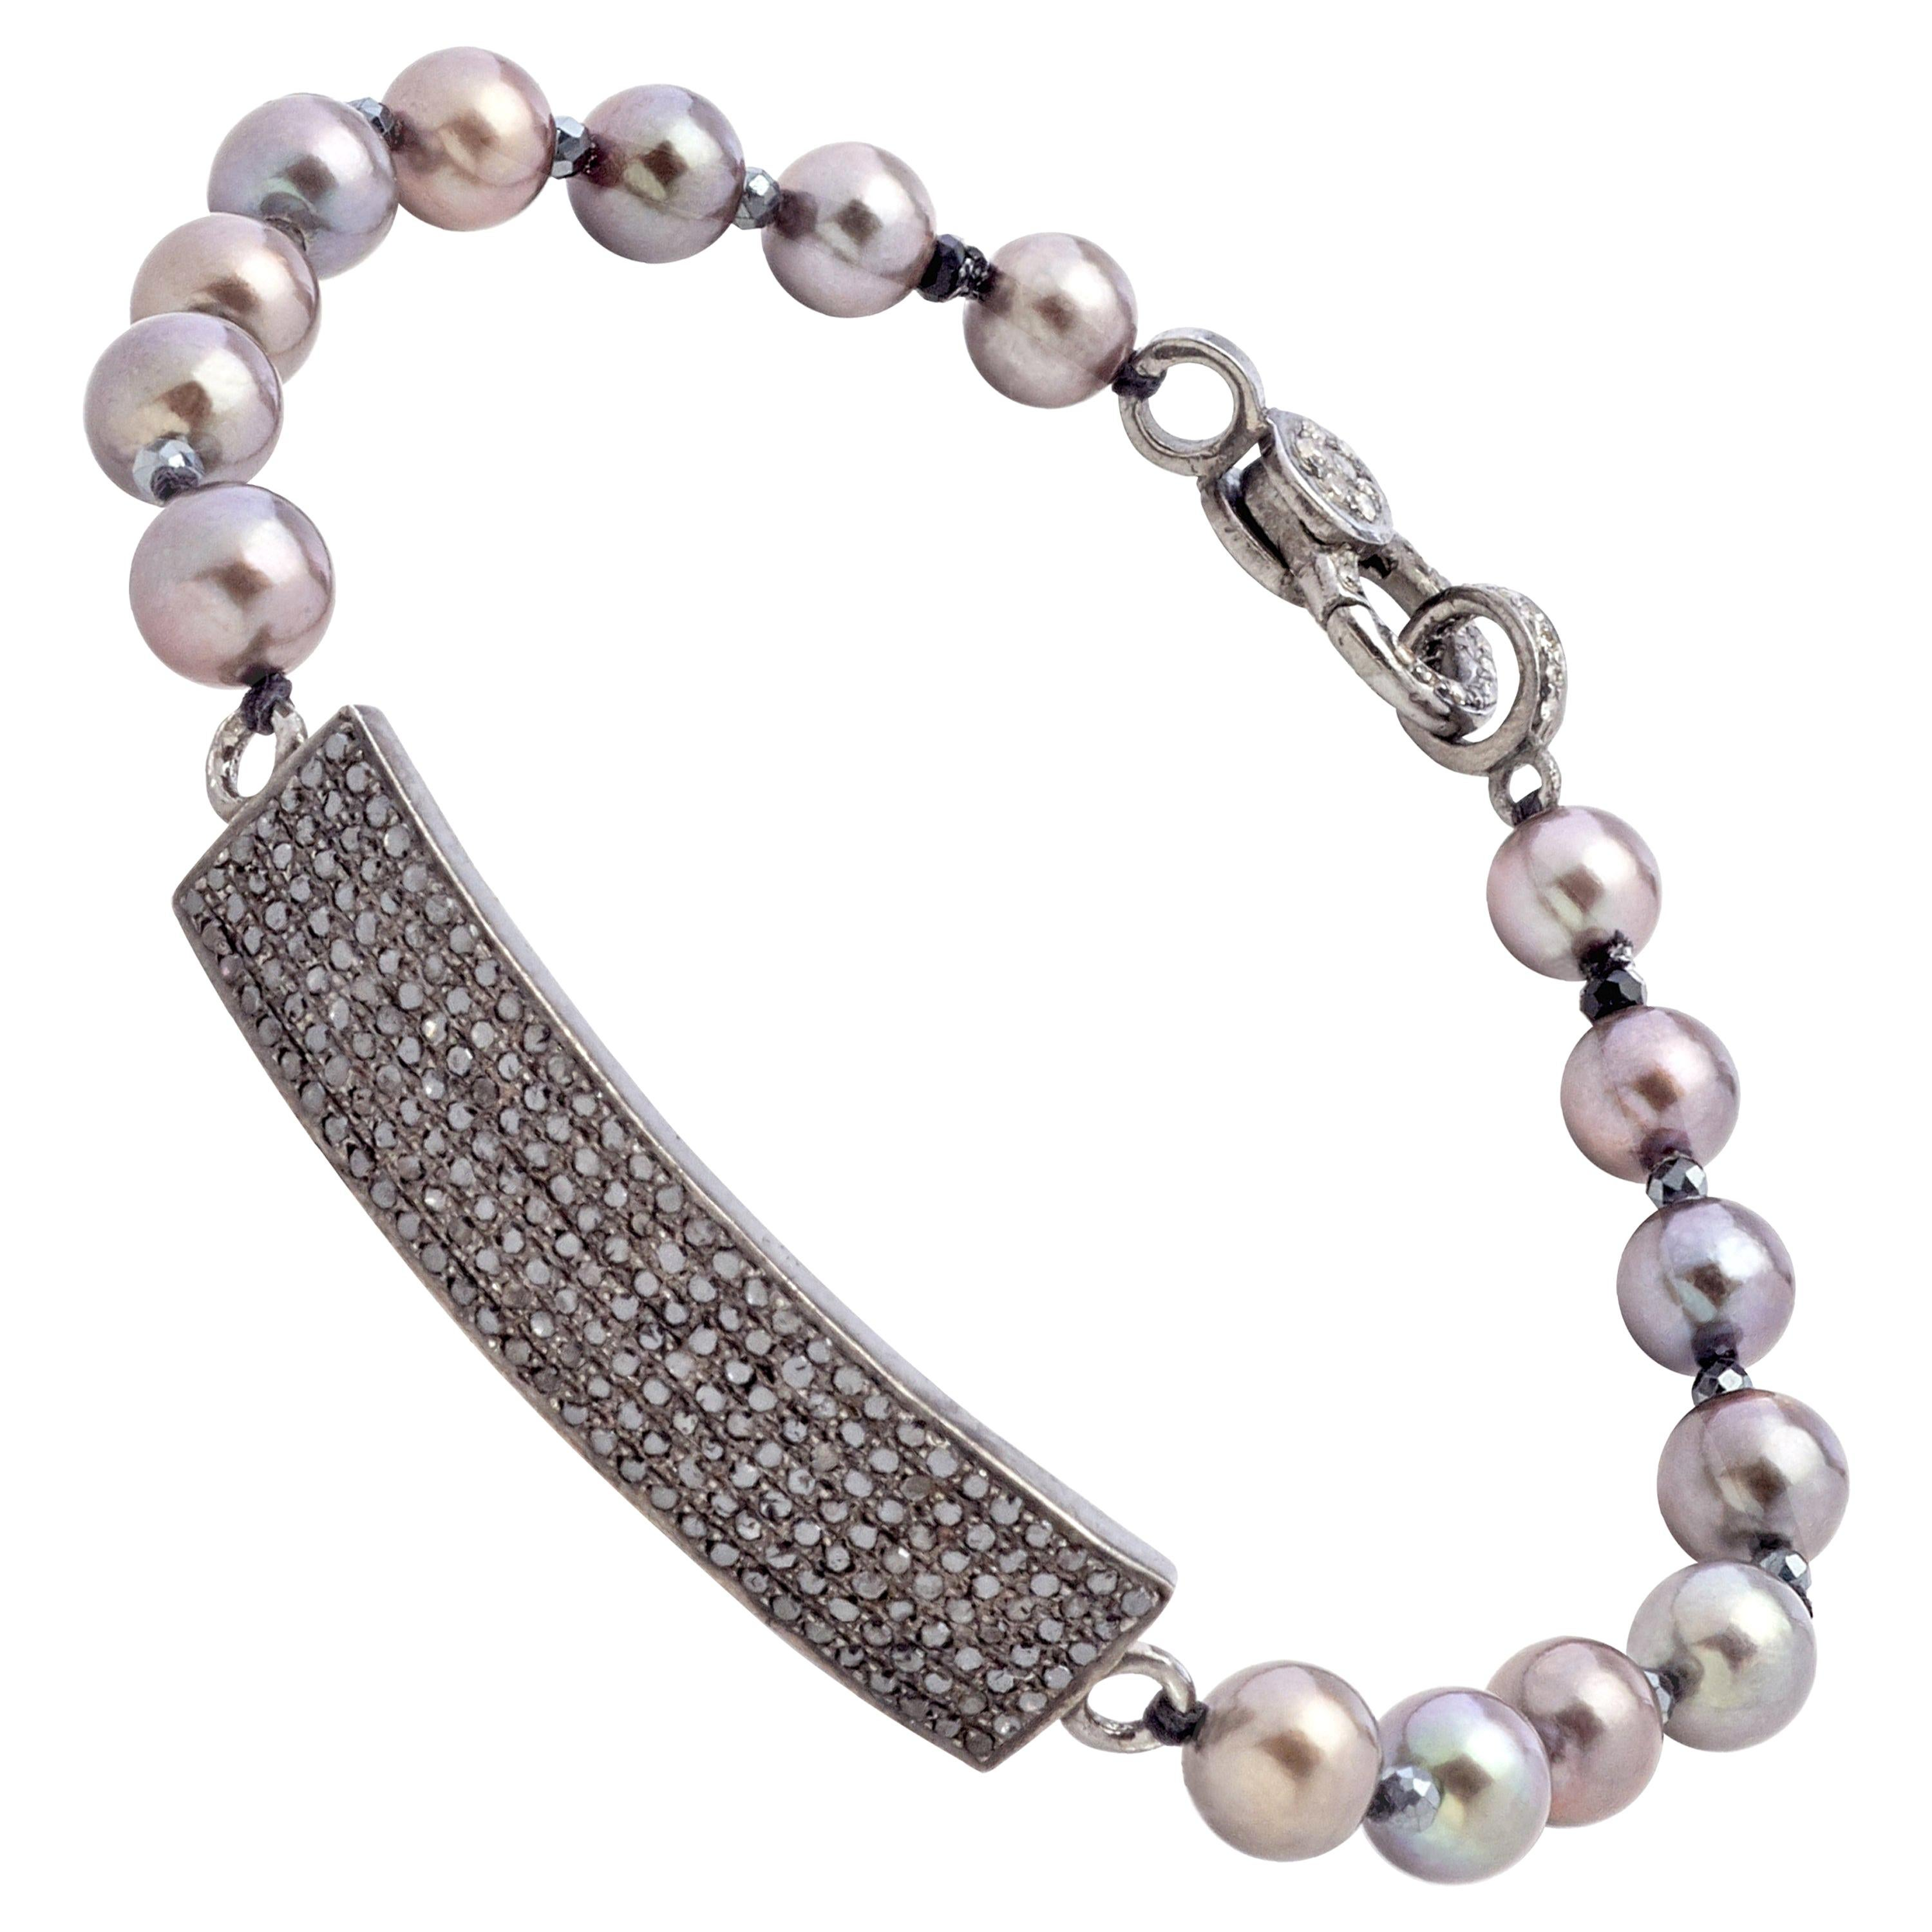 Diamond Sterling Silver Bar Bracelet with Gray Color Akoya Pearls